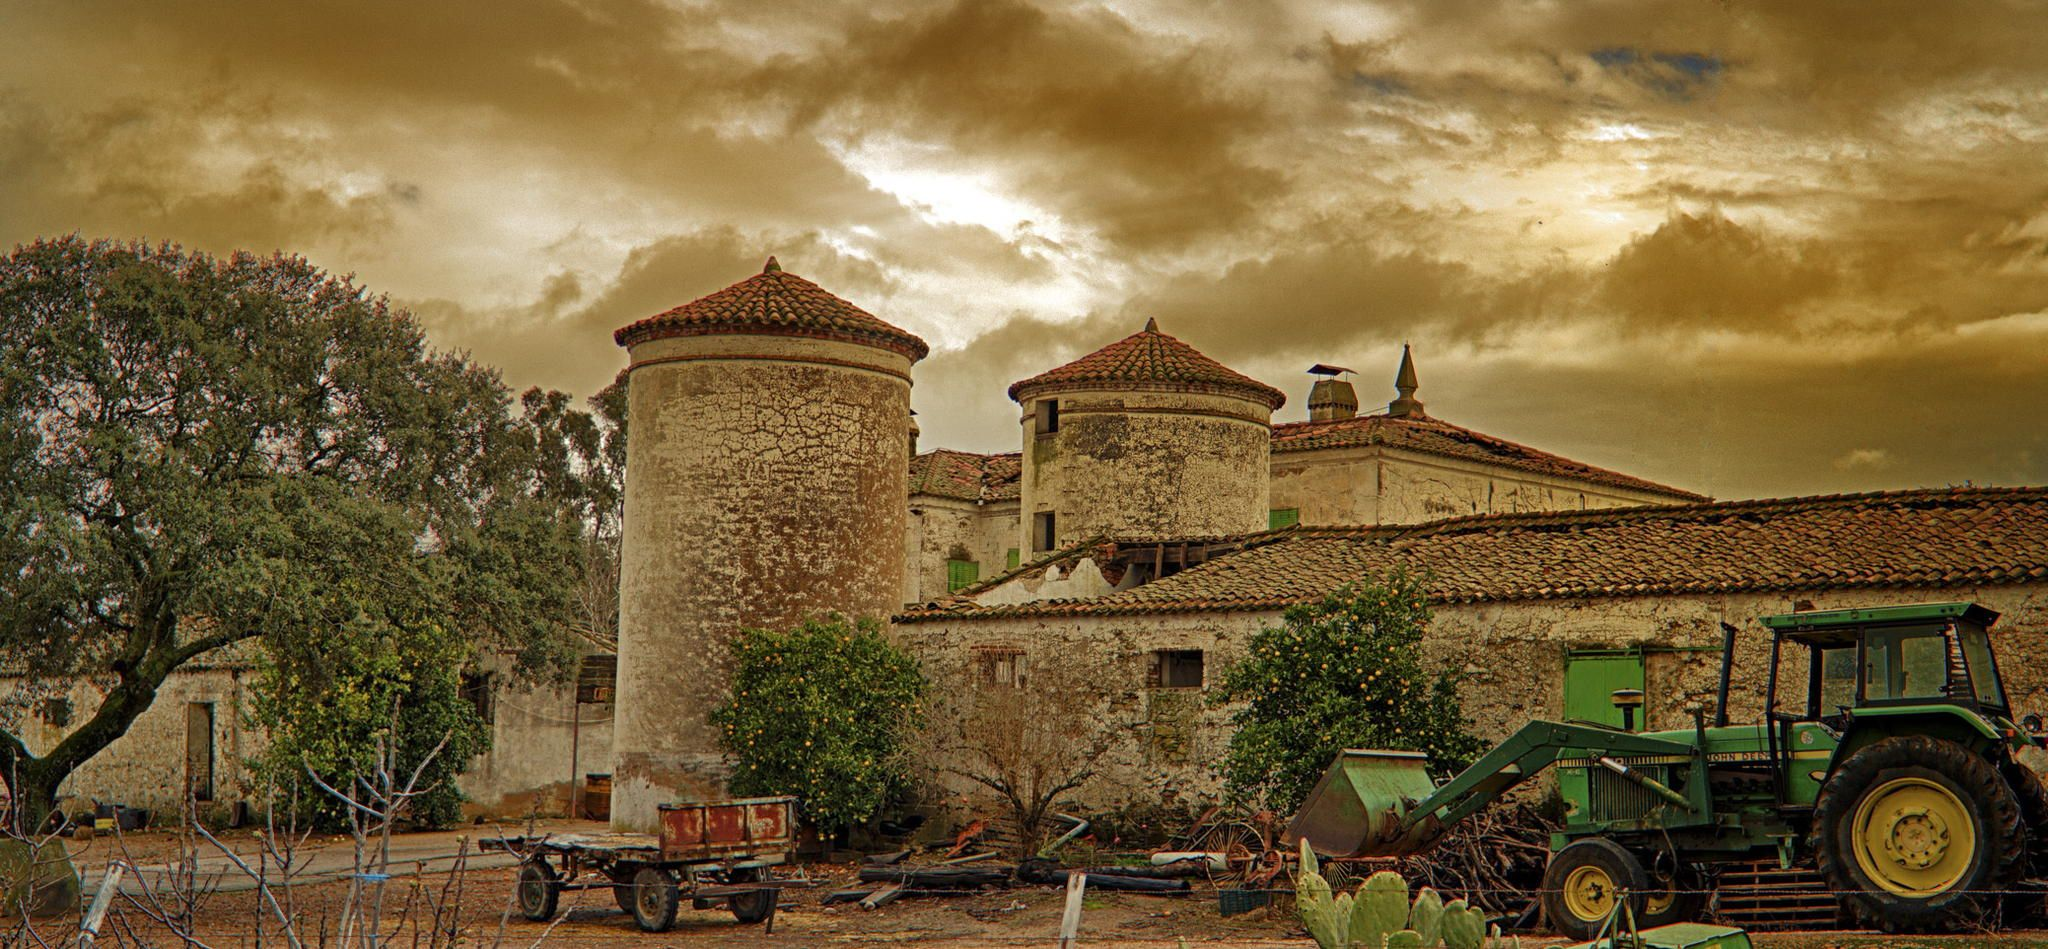 Lord of the Sheeps: The Two Towers of Aurelio by Javier  on 500px